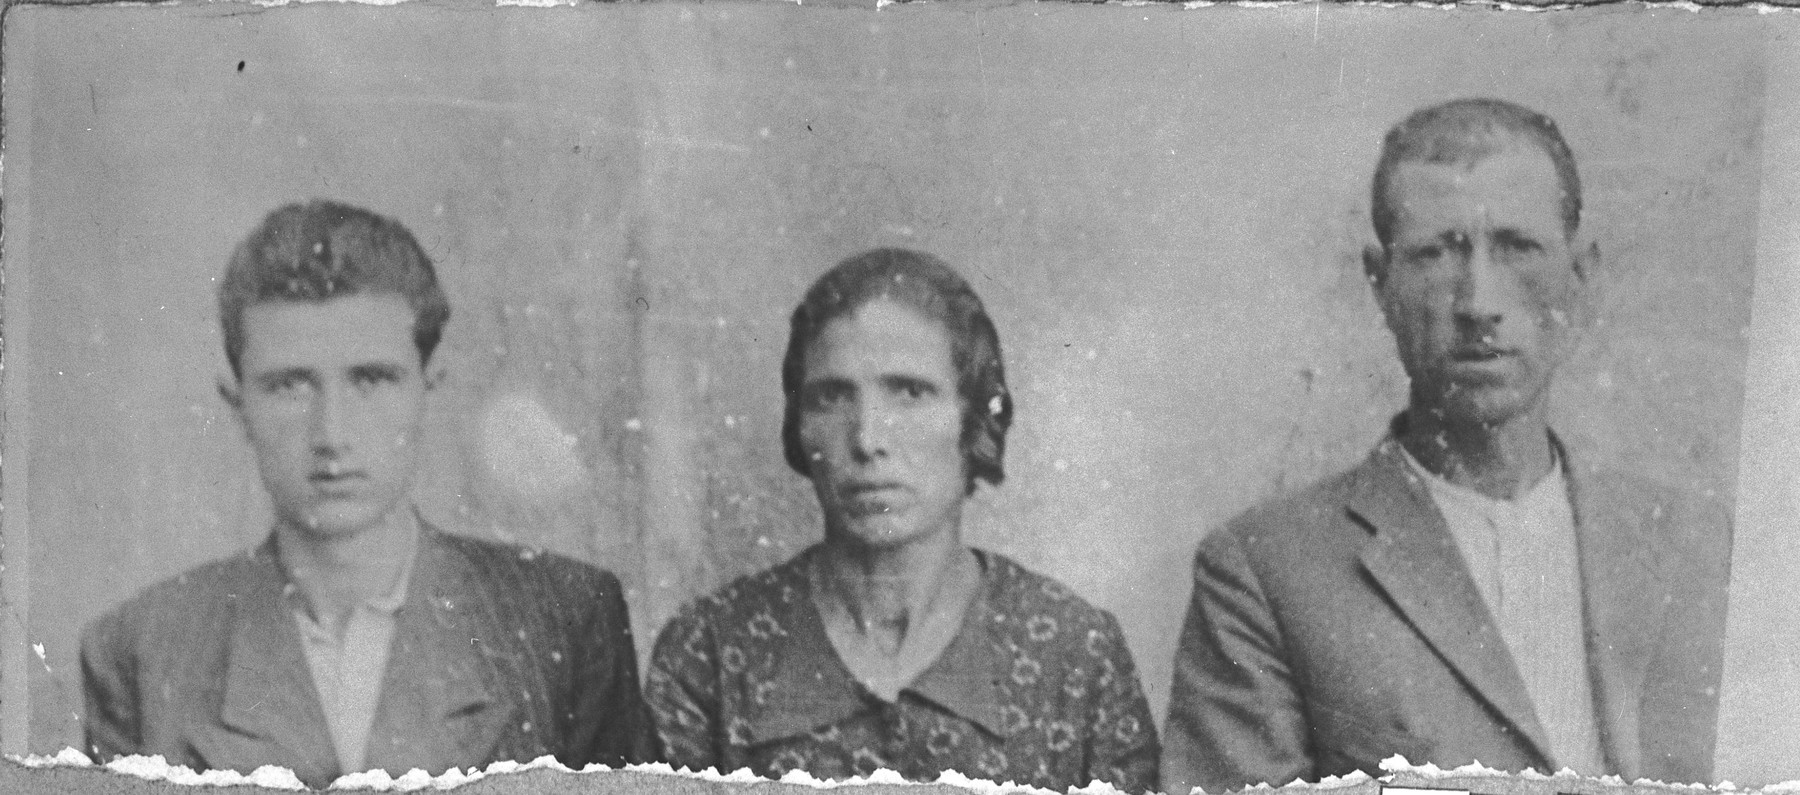 Portrait of Bohor Kamchi, son of Mushon Kamchi, Bohor's wife, Louisa, and his son, Mois.  Bohor was a plumber and Mois, a student.  The lived at Orisarska 7 in Bitola.